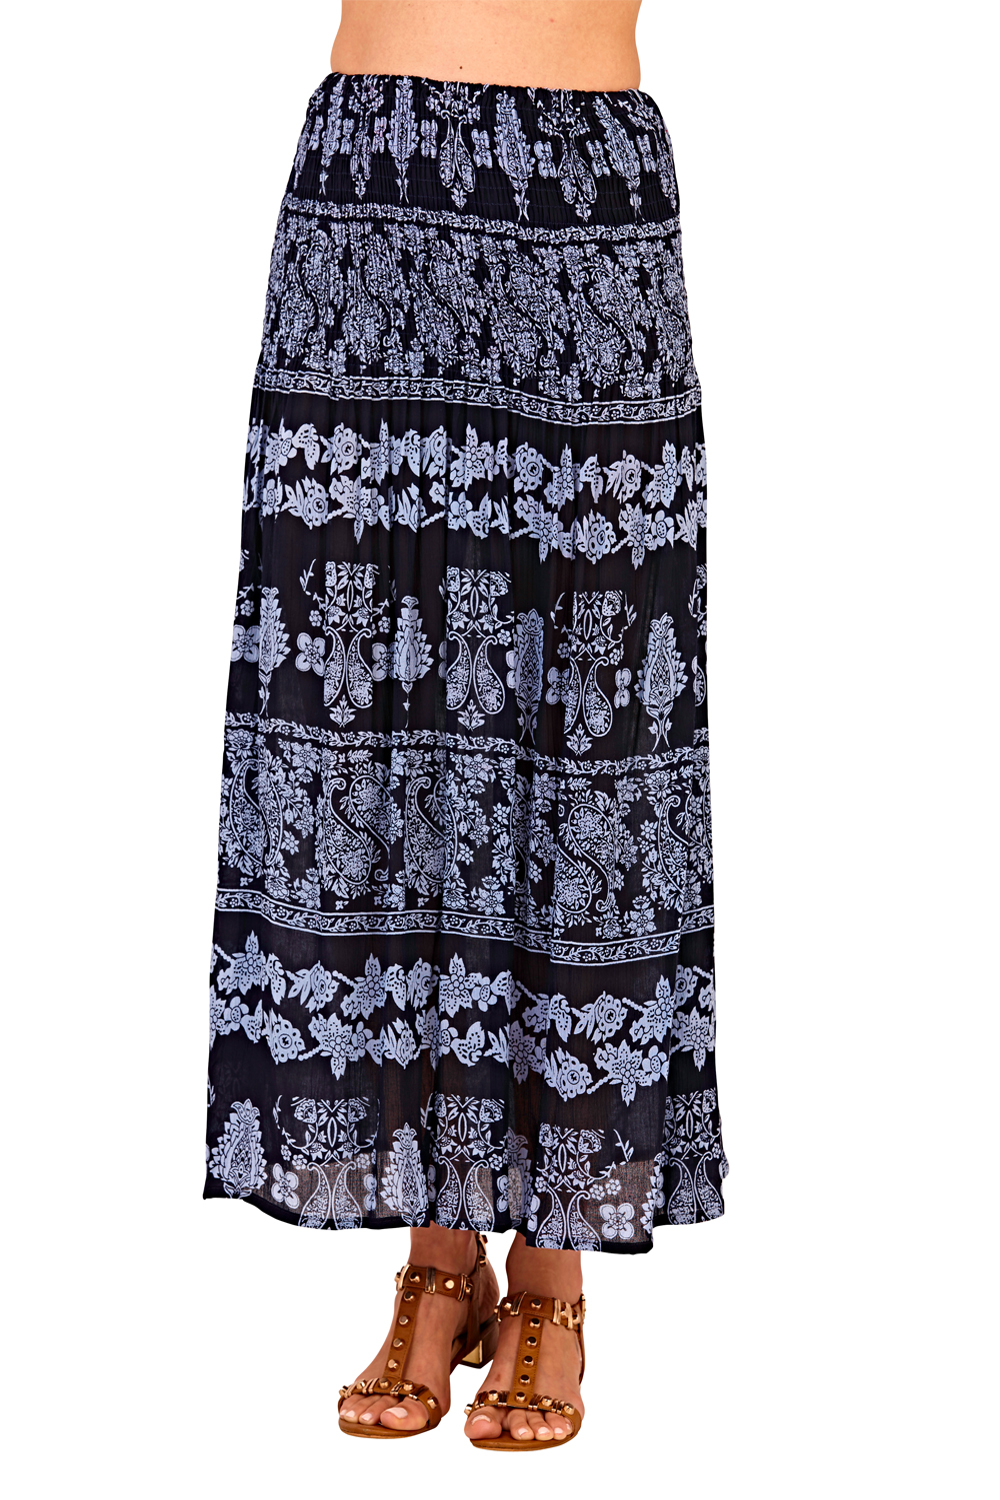 Pistachio-Womens-Patterned-3-In-1-Dresses-Ladies-New-Cotton-Summer-Beach-Skirts thumbnail 14